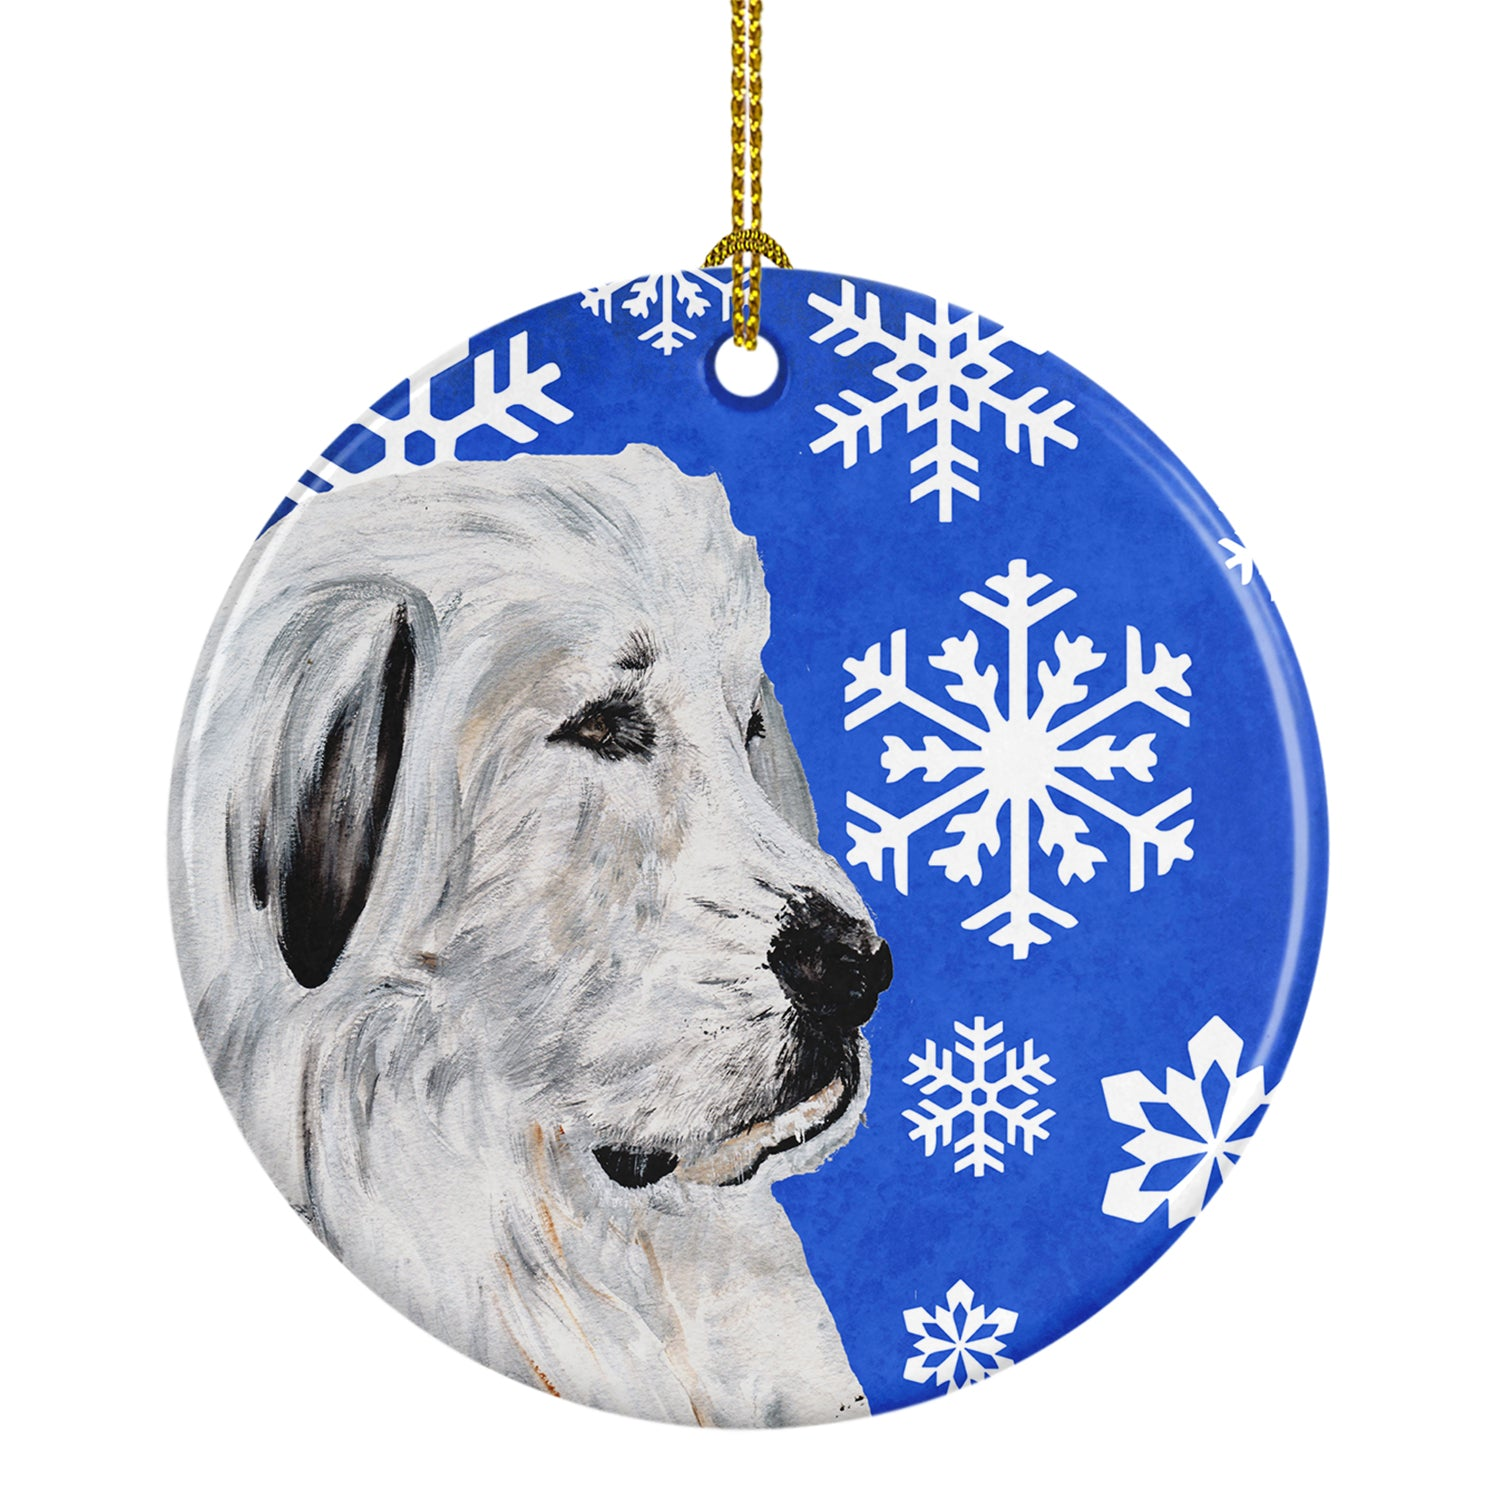 Great Pyrenees Winter Snowflakes Ceramic Ornament SC9786CO1 by Caroline's Treasures